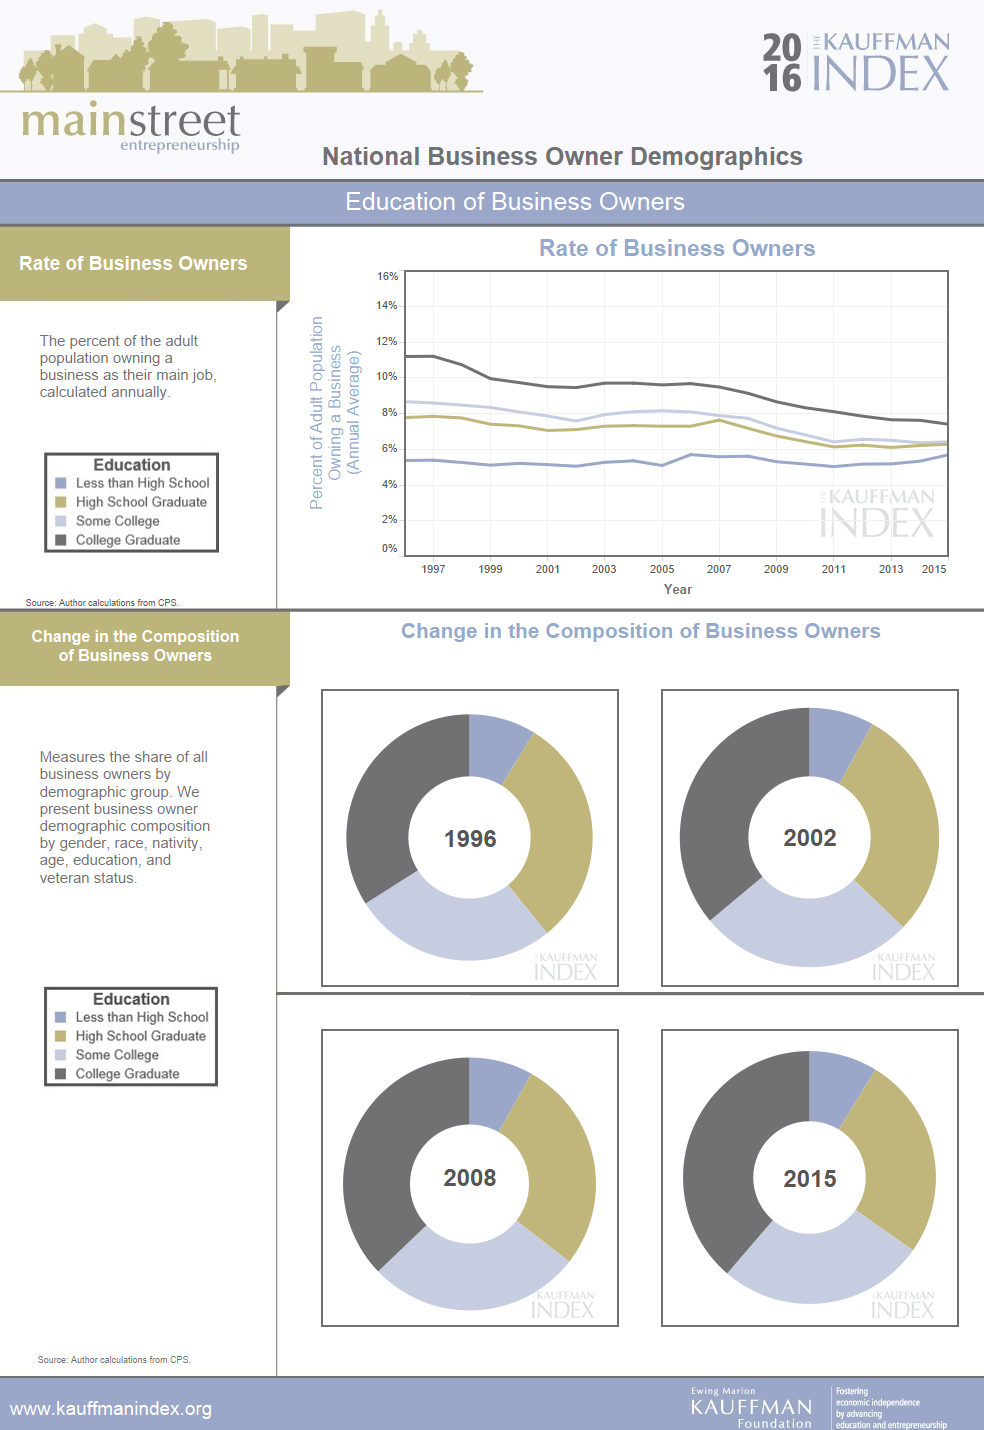 Kauffman Index - 2016 - Main Street - Entrepreneurial Demographics Profiles.png